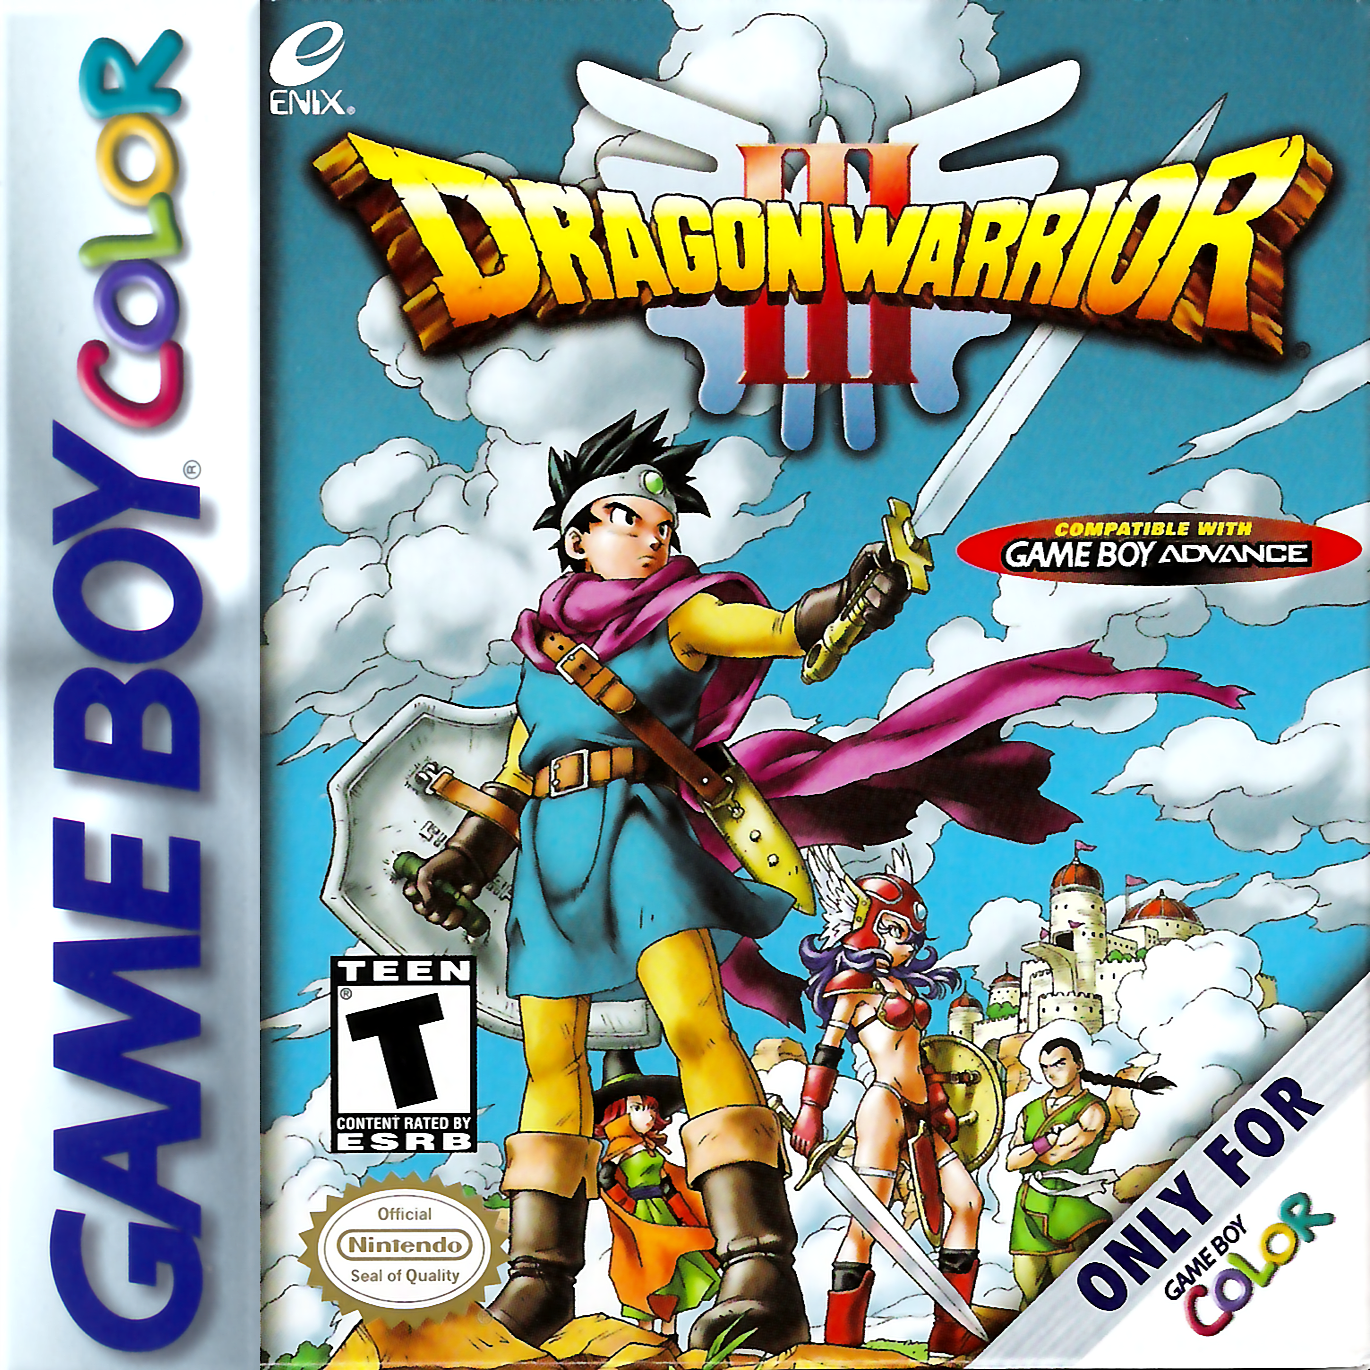 Game boy color online games - Dragon Warrior Iii Nintendo Game Boy Color Cover Artwork